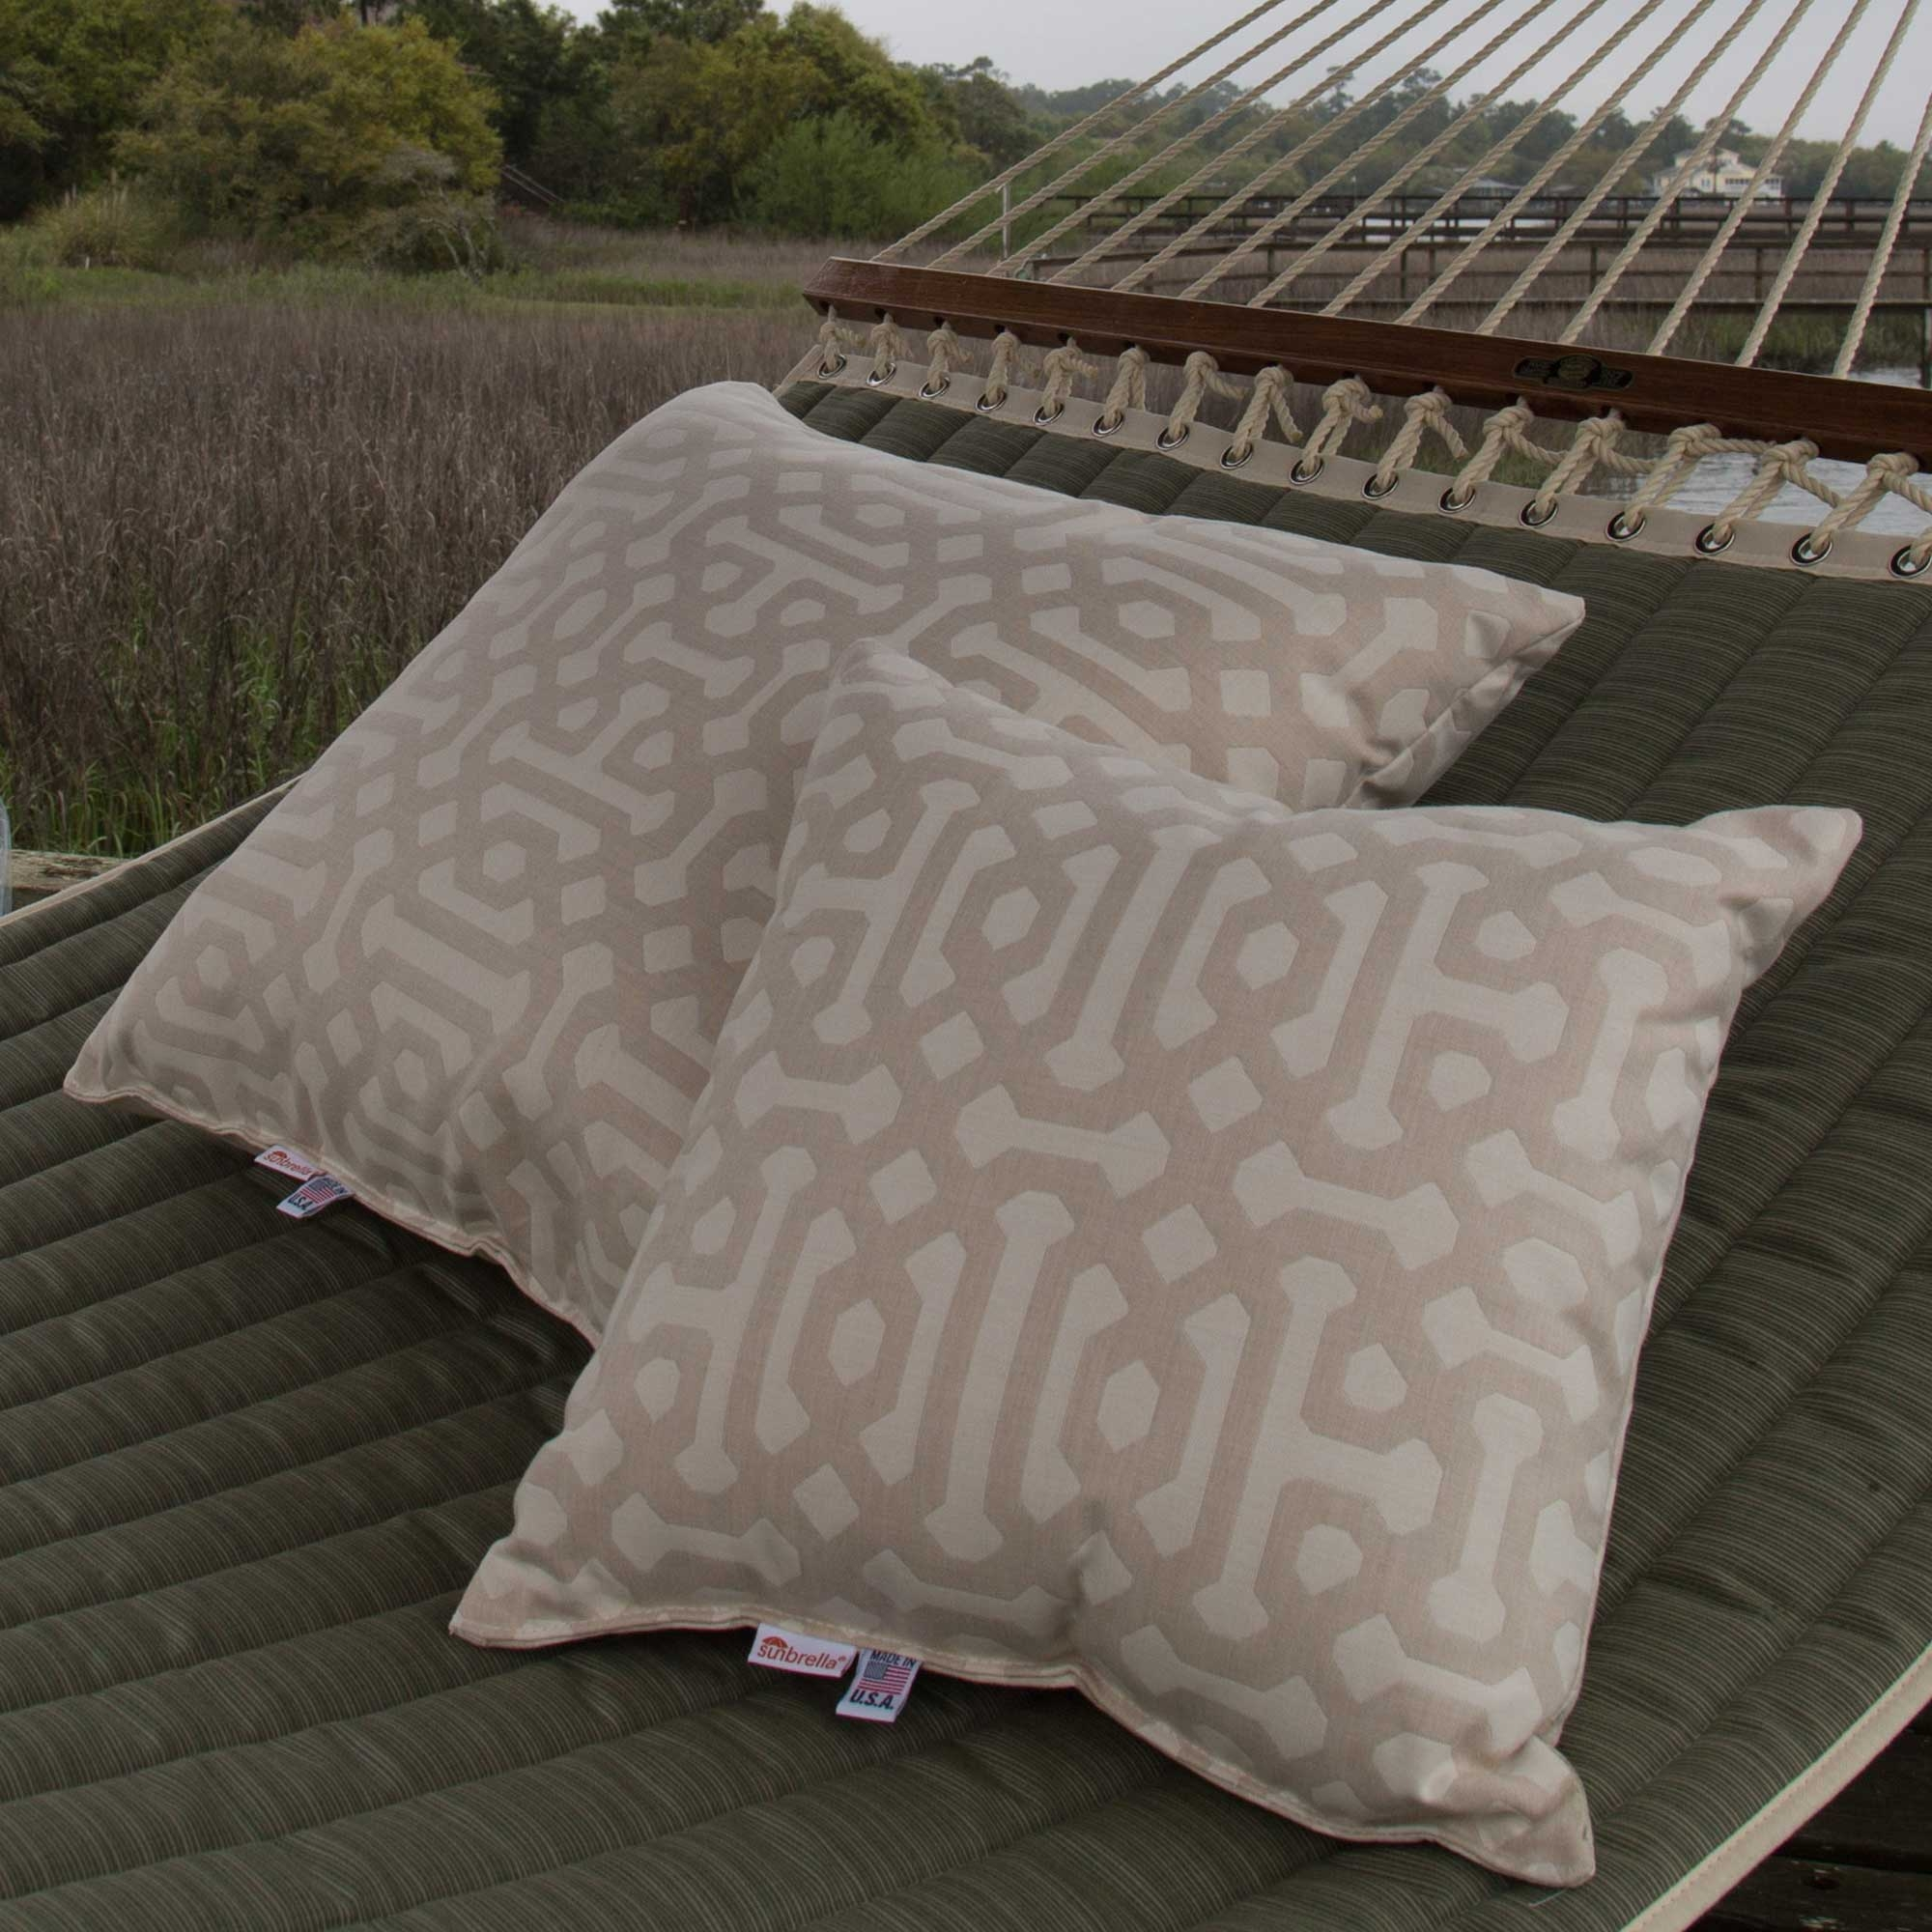 Throw Pillow Trends 2015 : 2016 Colour Trends For Outdoor Cushions - Cushion Factory